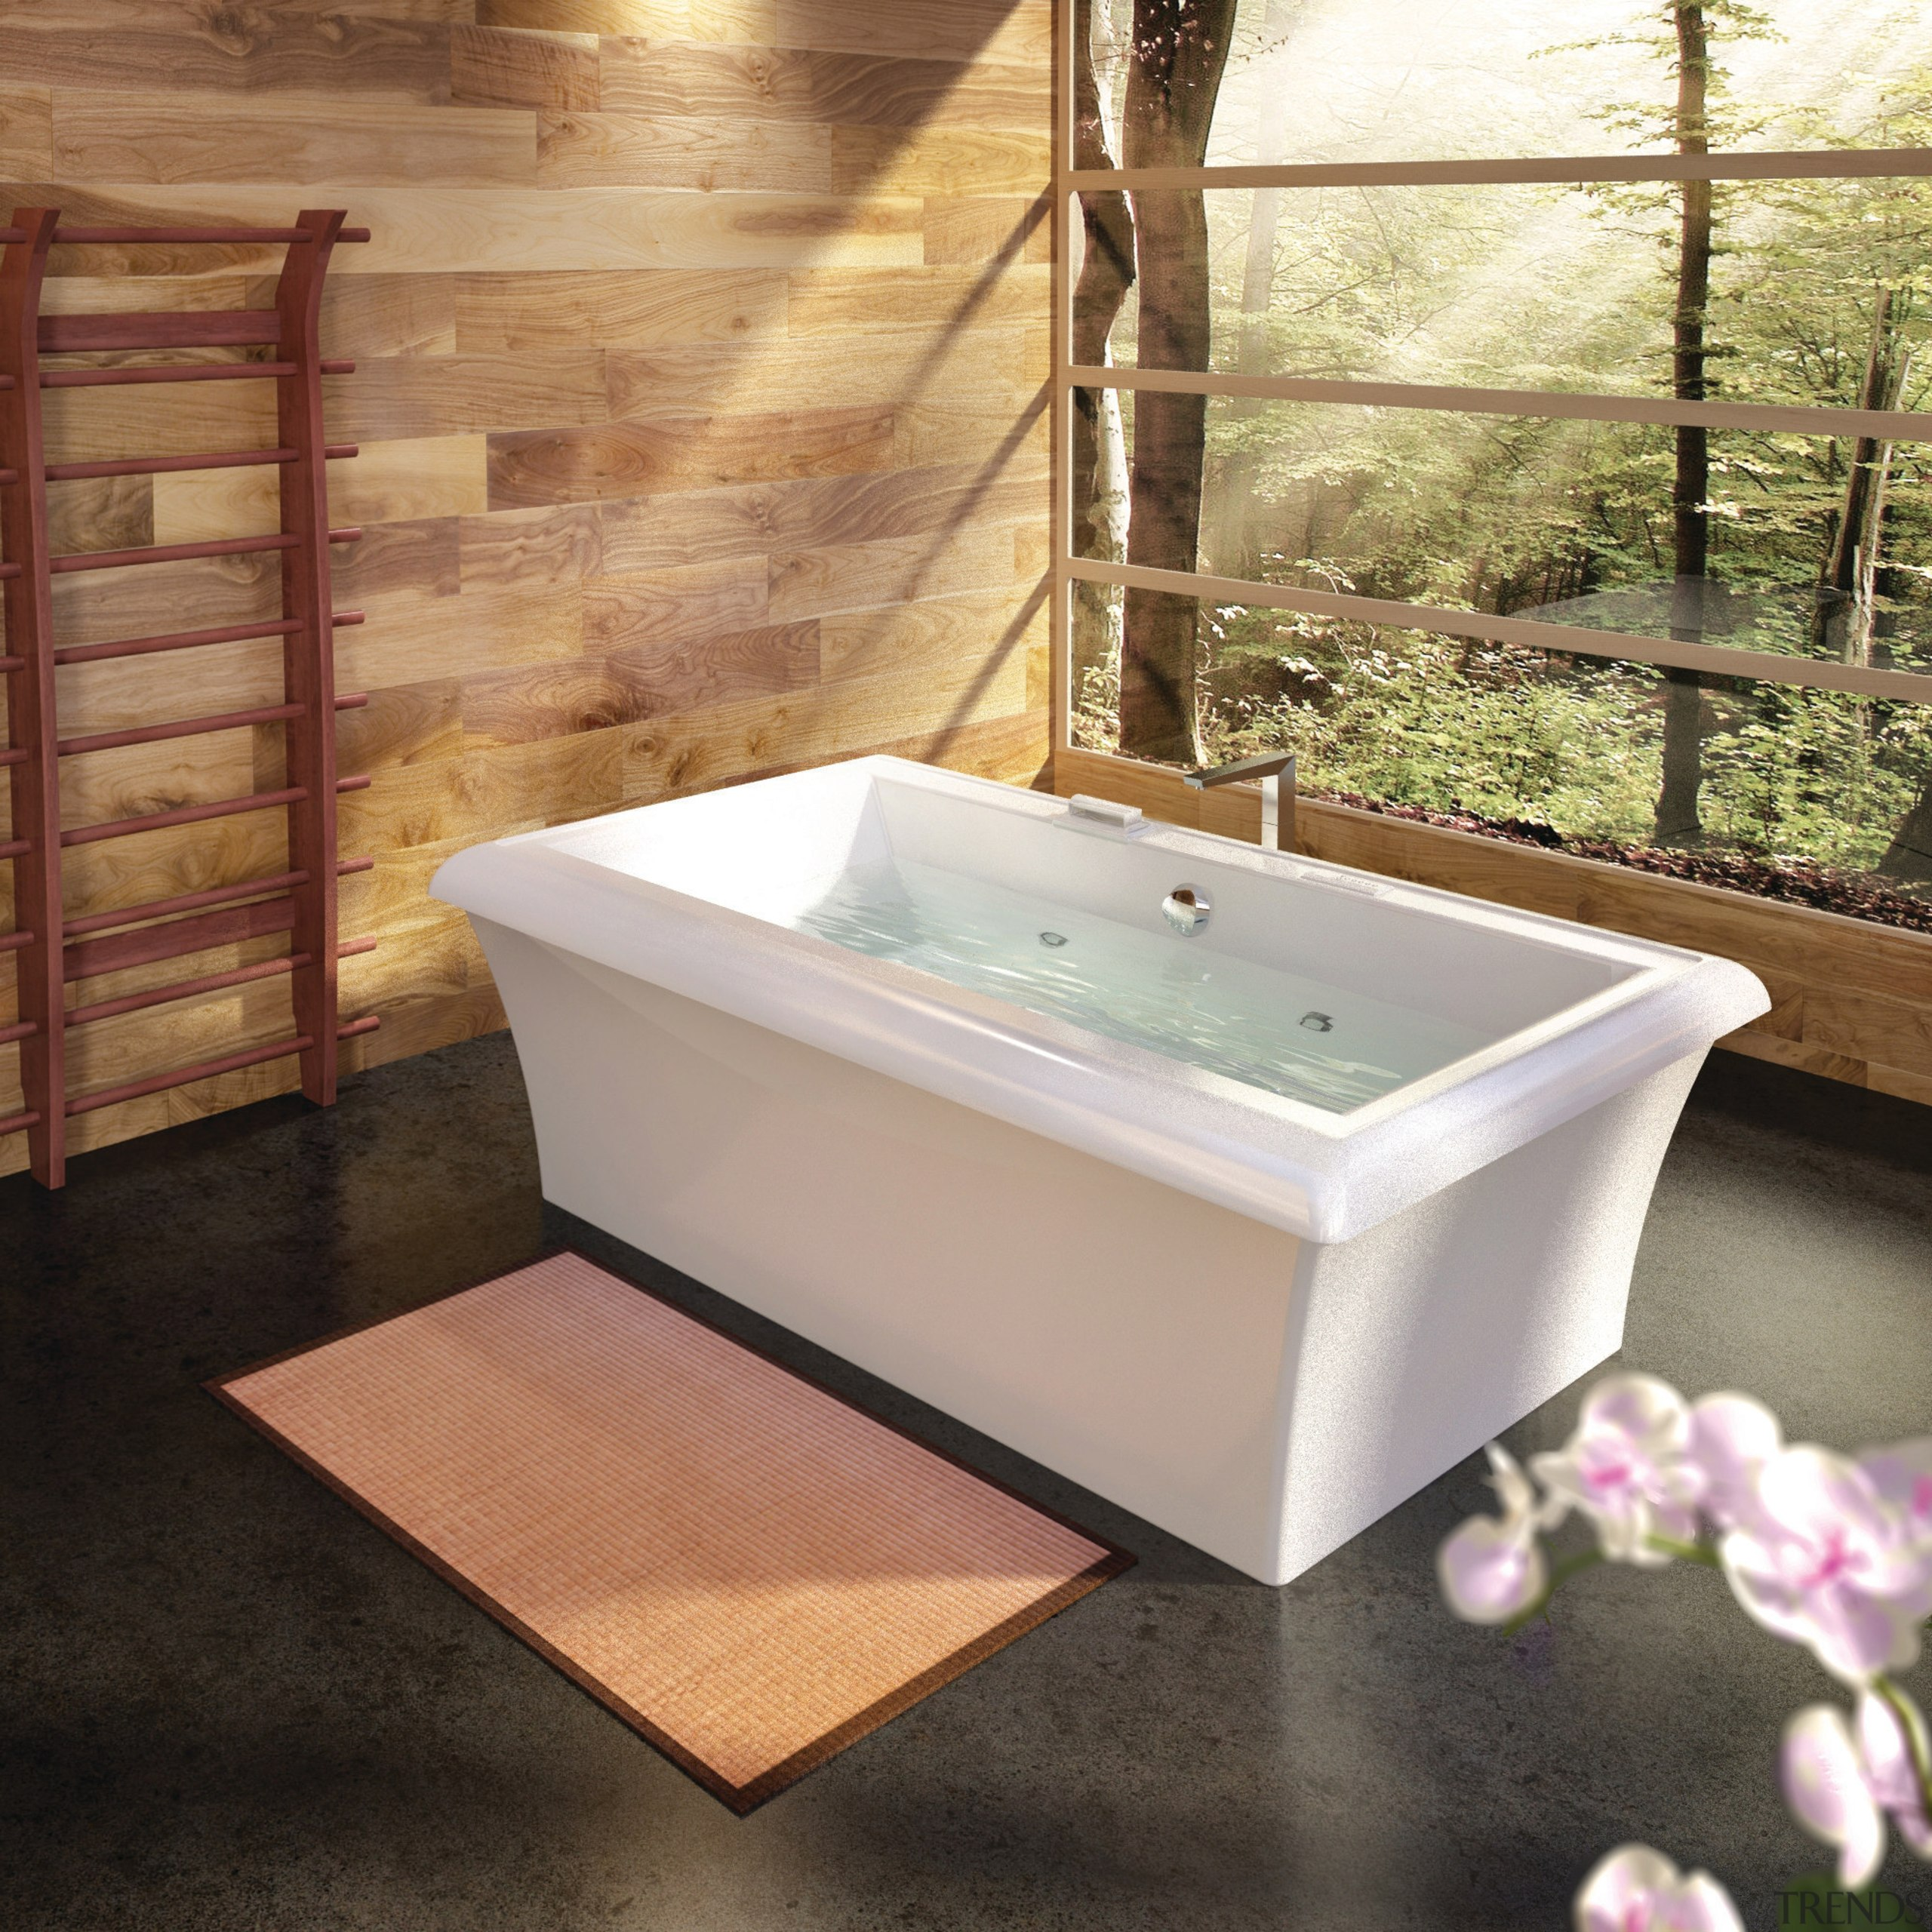 Although the Origami reflects a distinctive Japanese design bathroom, bathtub, floor, plumbing fixture